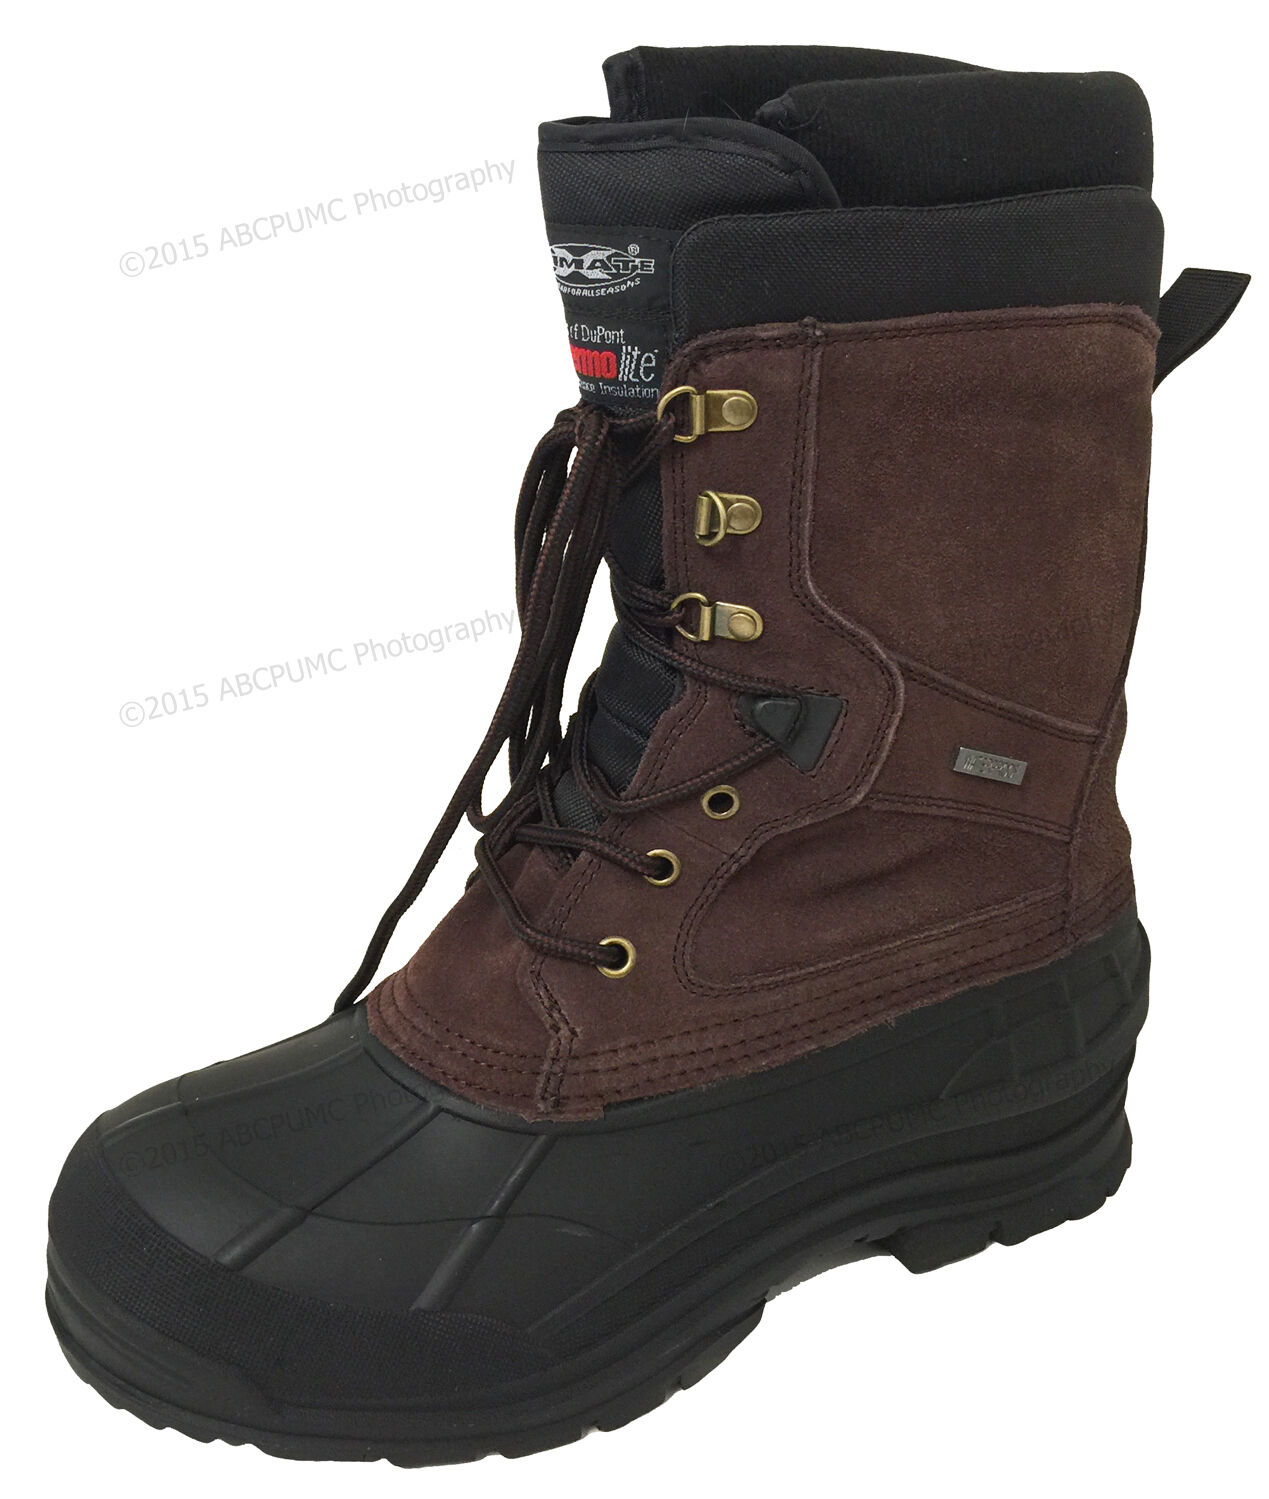 Mens Winter Boots 10  Leather Thermolite Waterproof Hiking Snow shoes Size 6.5-13